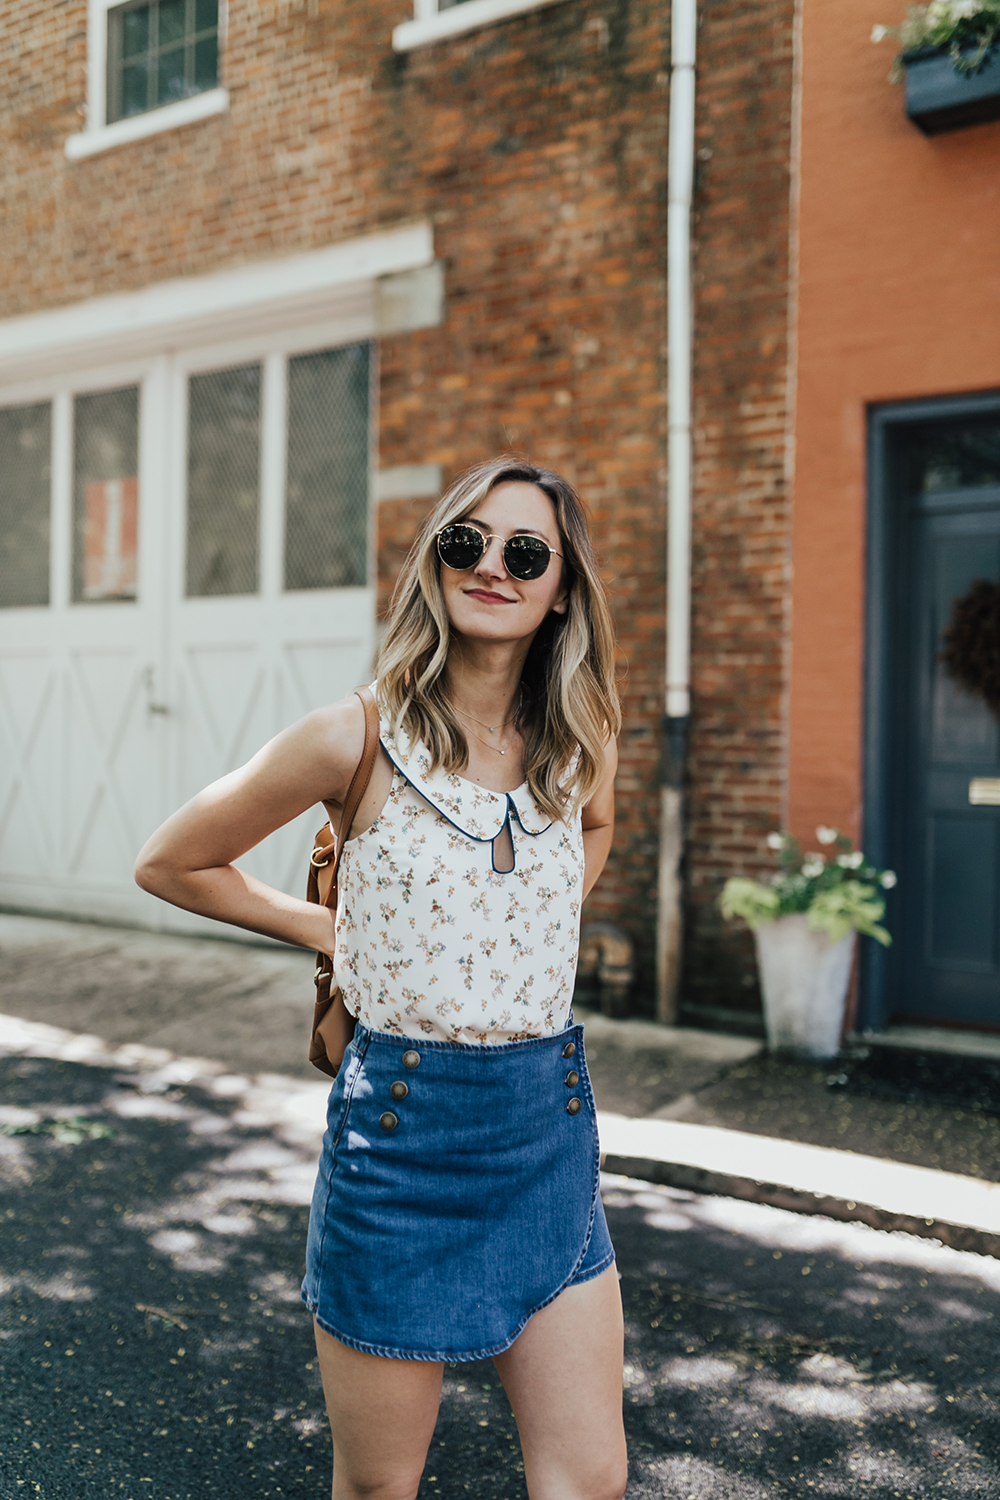 livvyland-blog-olivia-watson-new-york-city-cobble-hill-brooklyn-modcloth-skort-peter-pan-collar-top-vans-classic-sneakers-summer-outfit-11